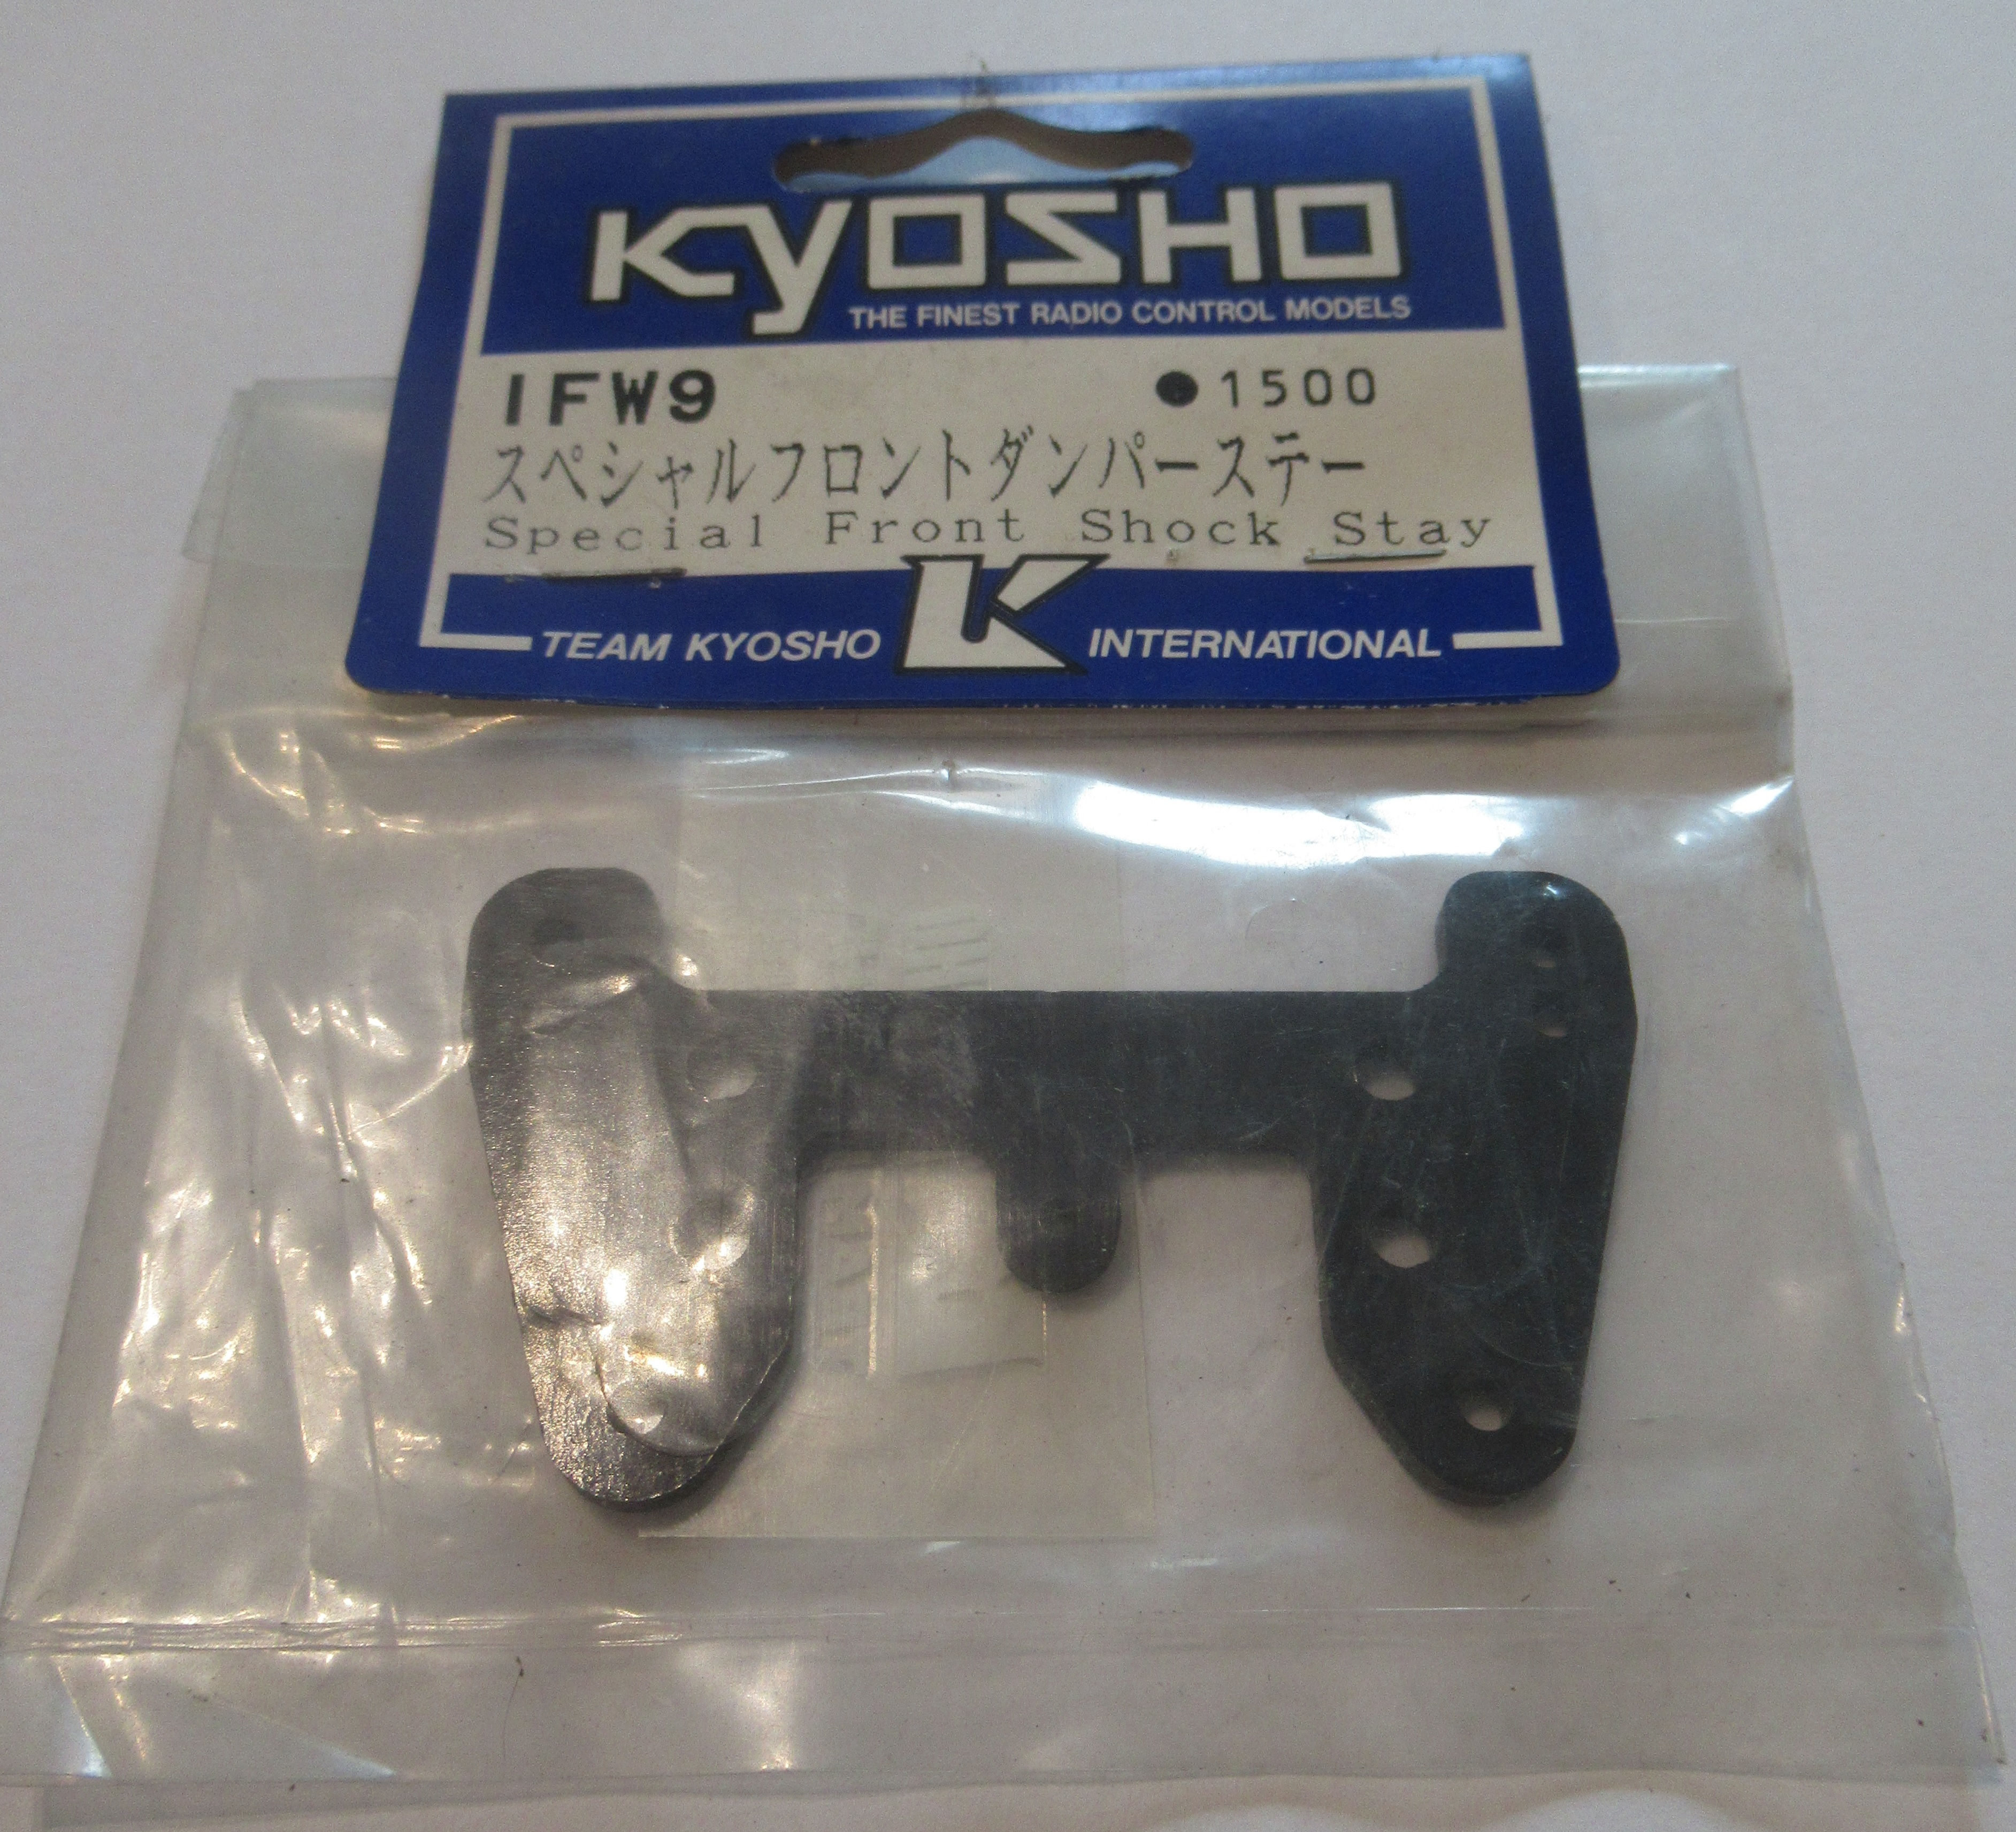 Kyosho IFW9 Special Front Shock Stay